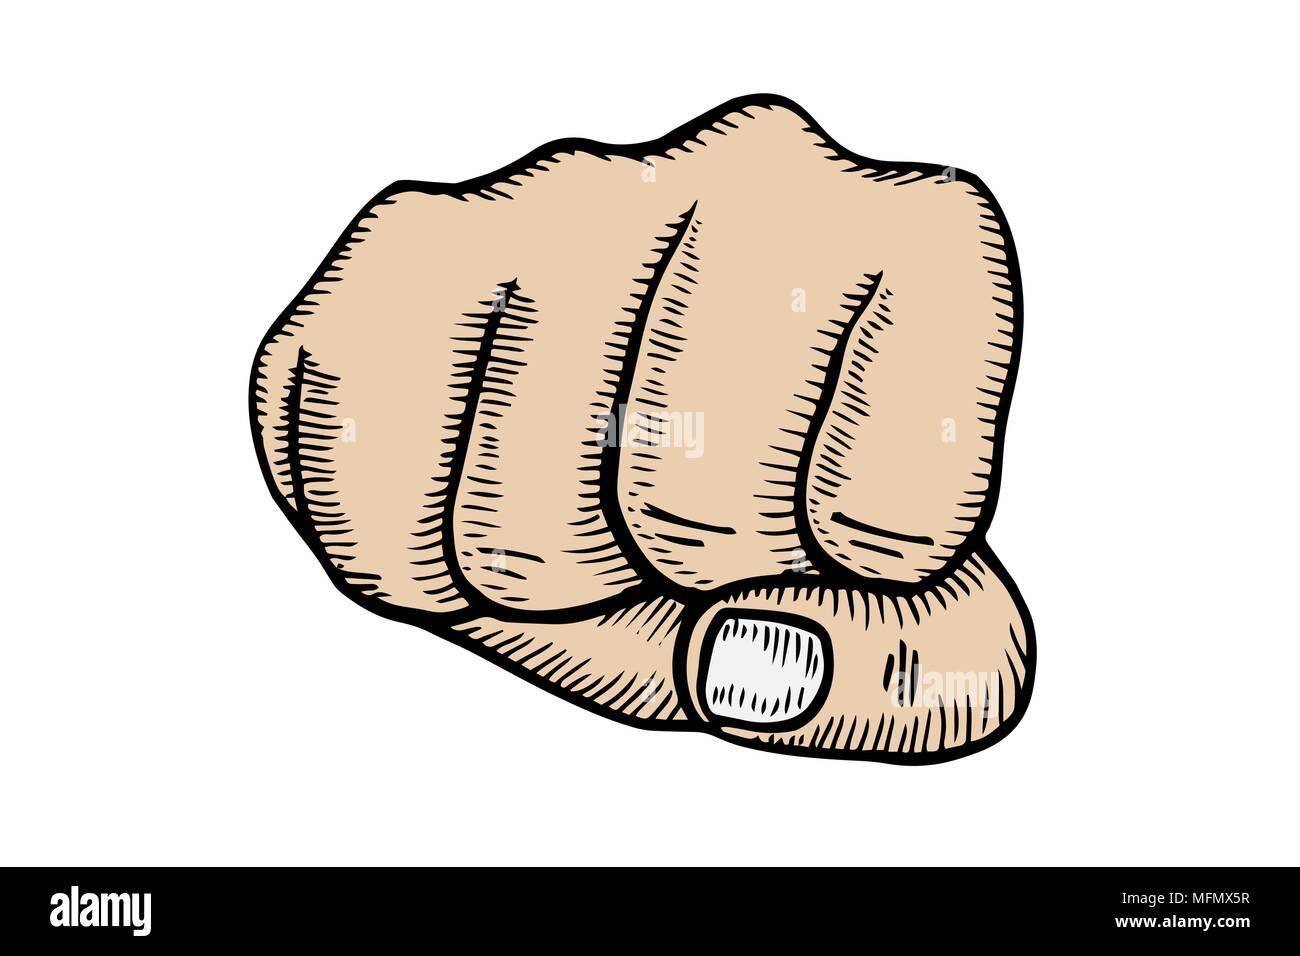 Vector simple drawing - a man's fist on a white background - Stock Image